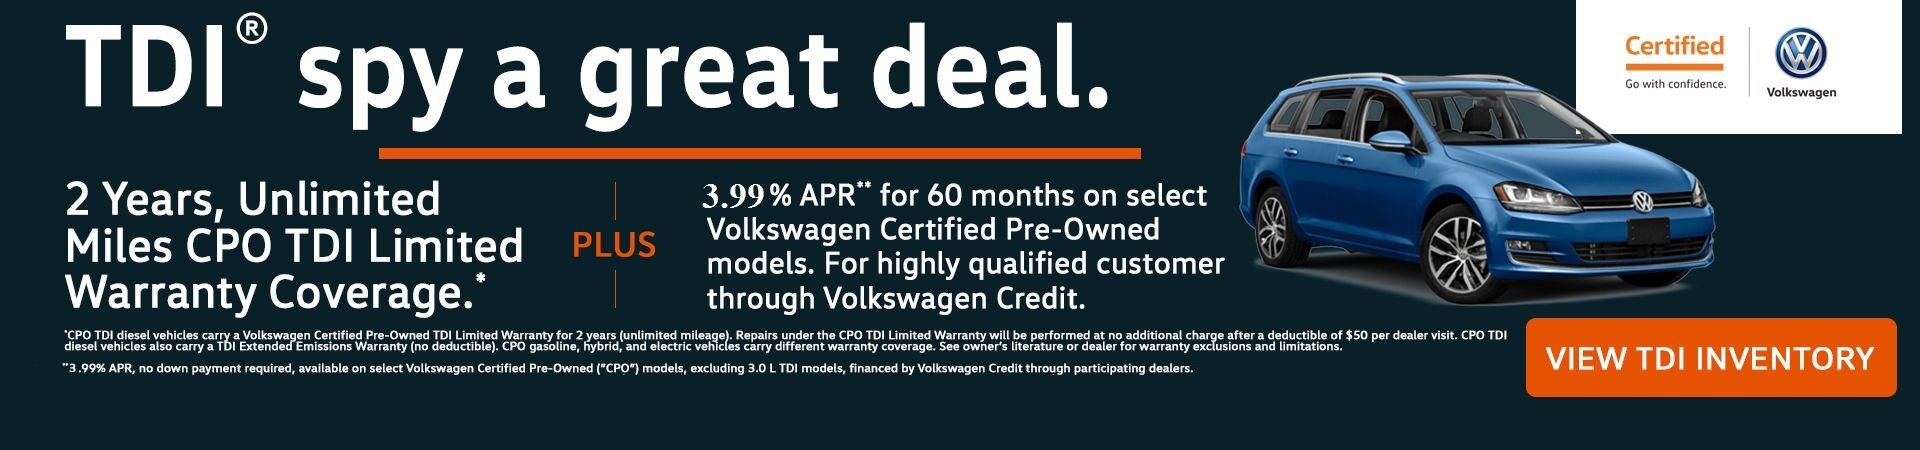 cars dtc ma dare clark brockton dealership compare used vw paul to dealers in volkswagen atlas sh